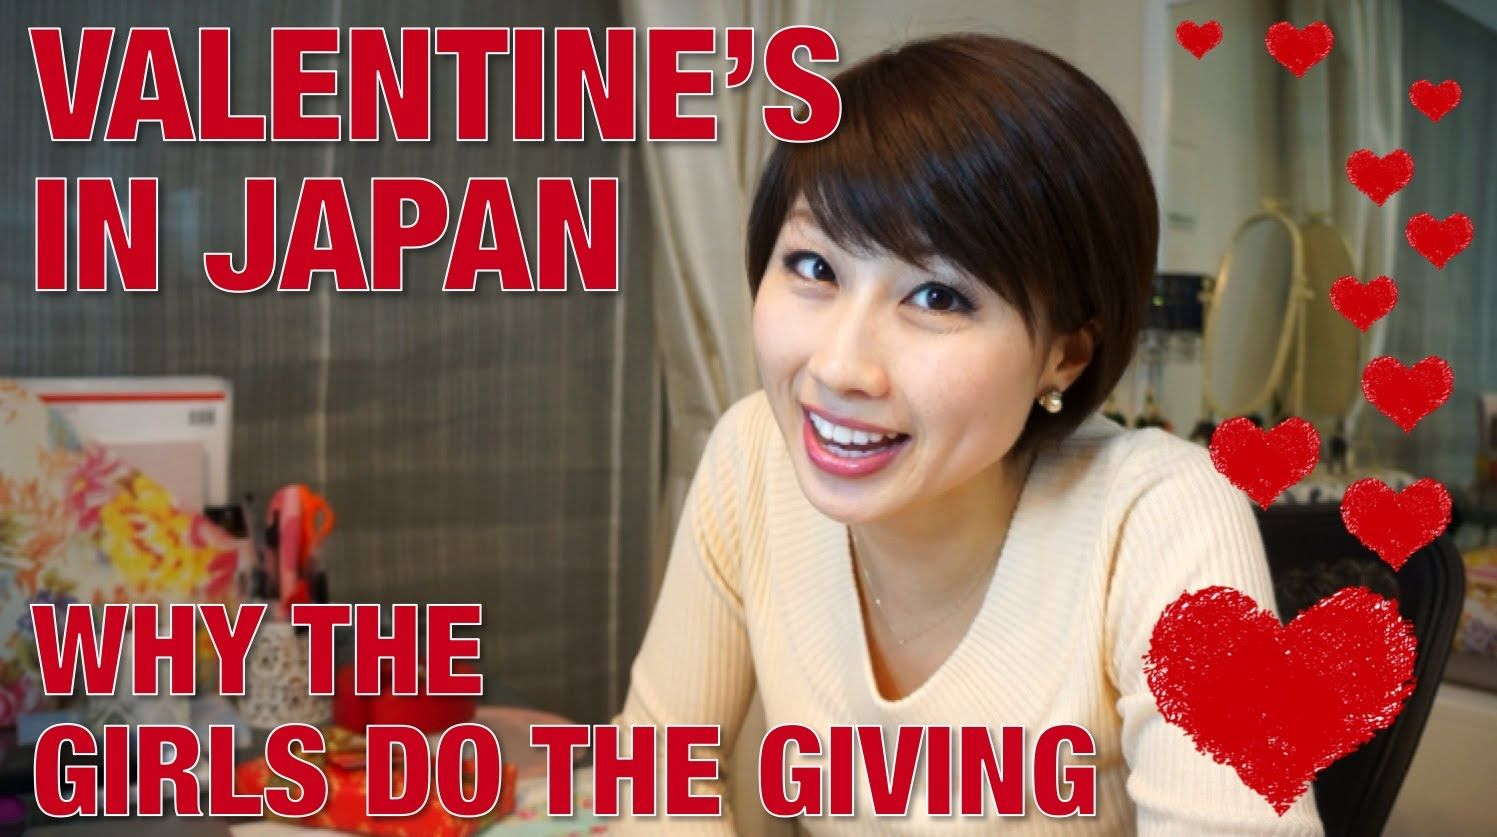 Valentine's Day in Japan - Why the girls do the giving☆